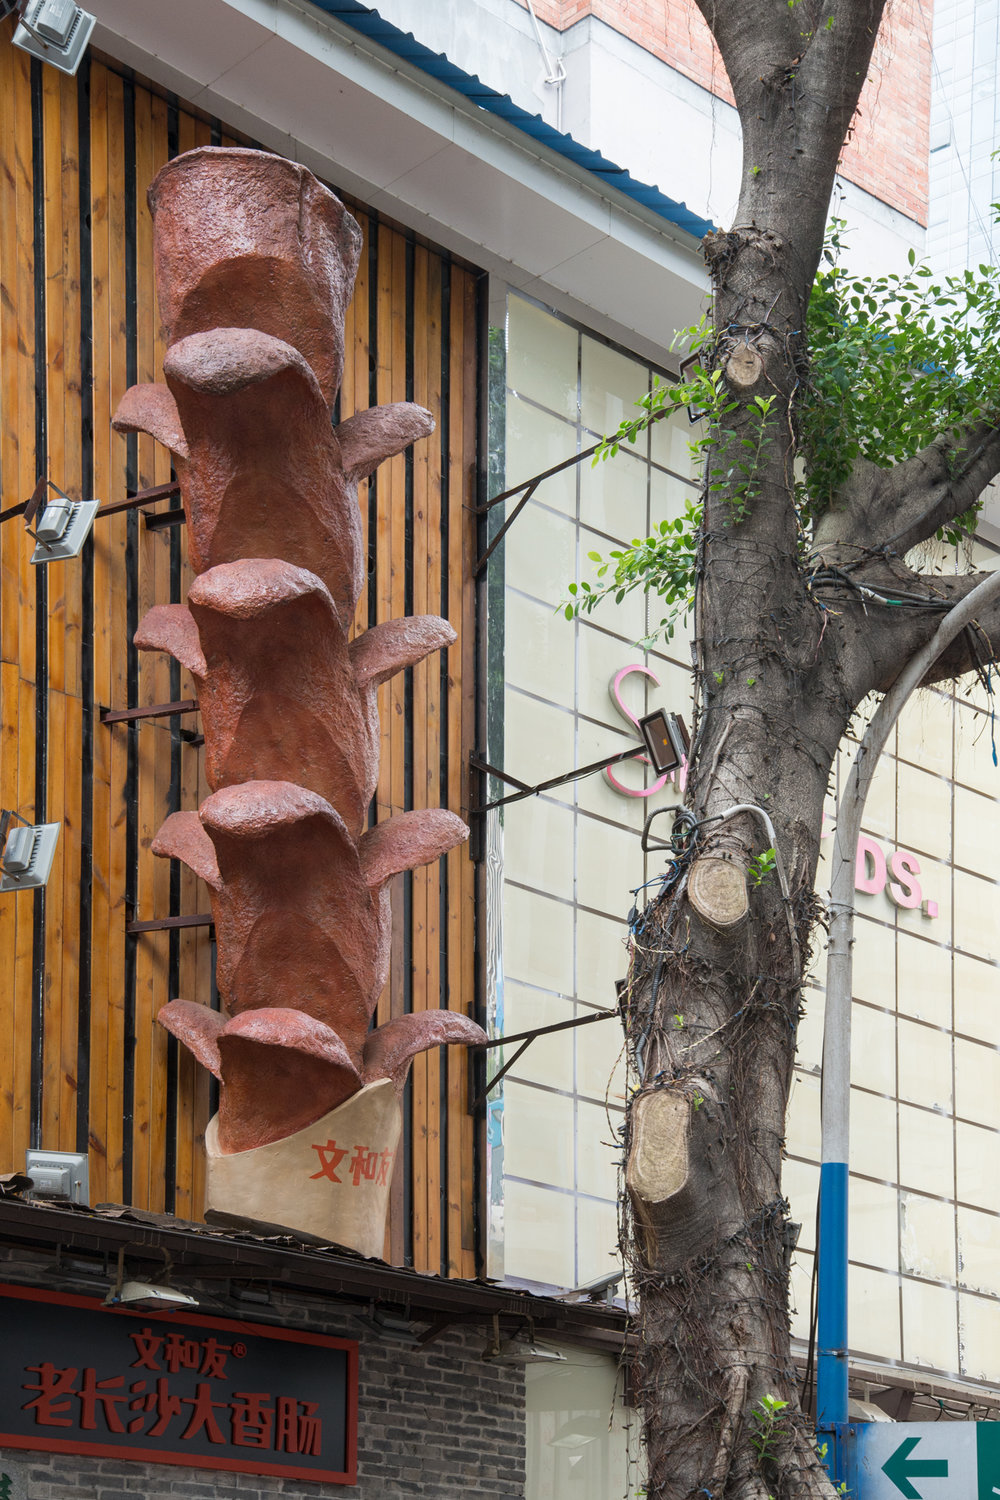 Noodle Shop Sign and Tree